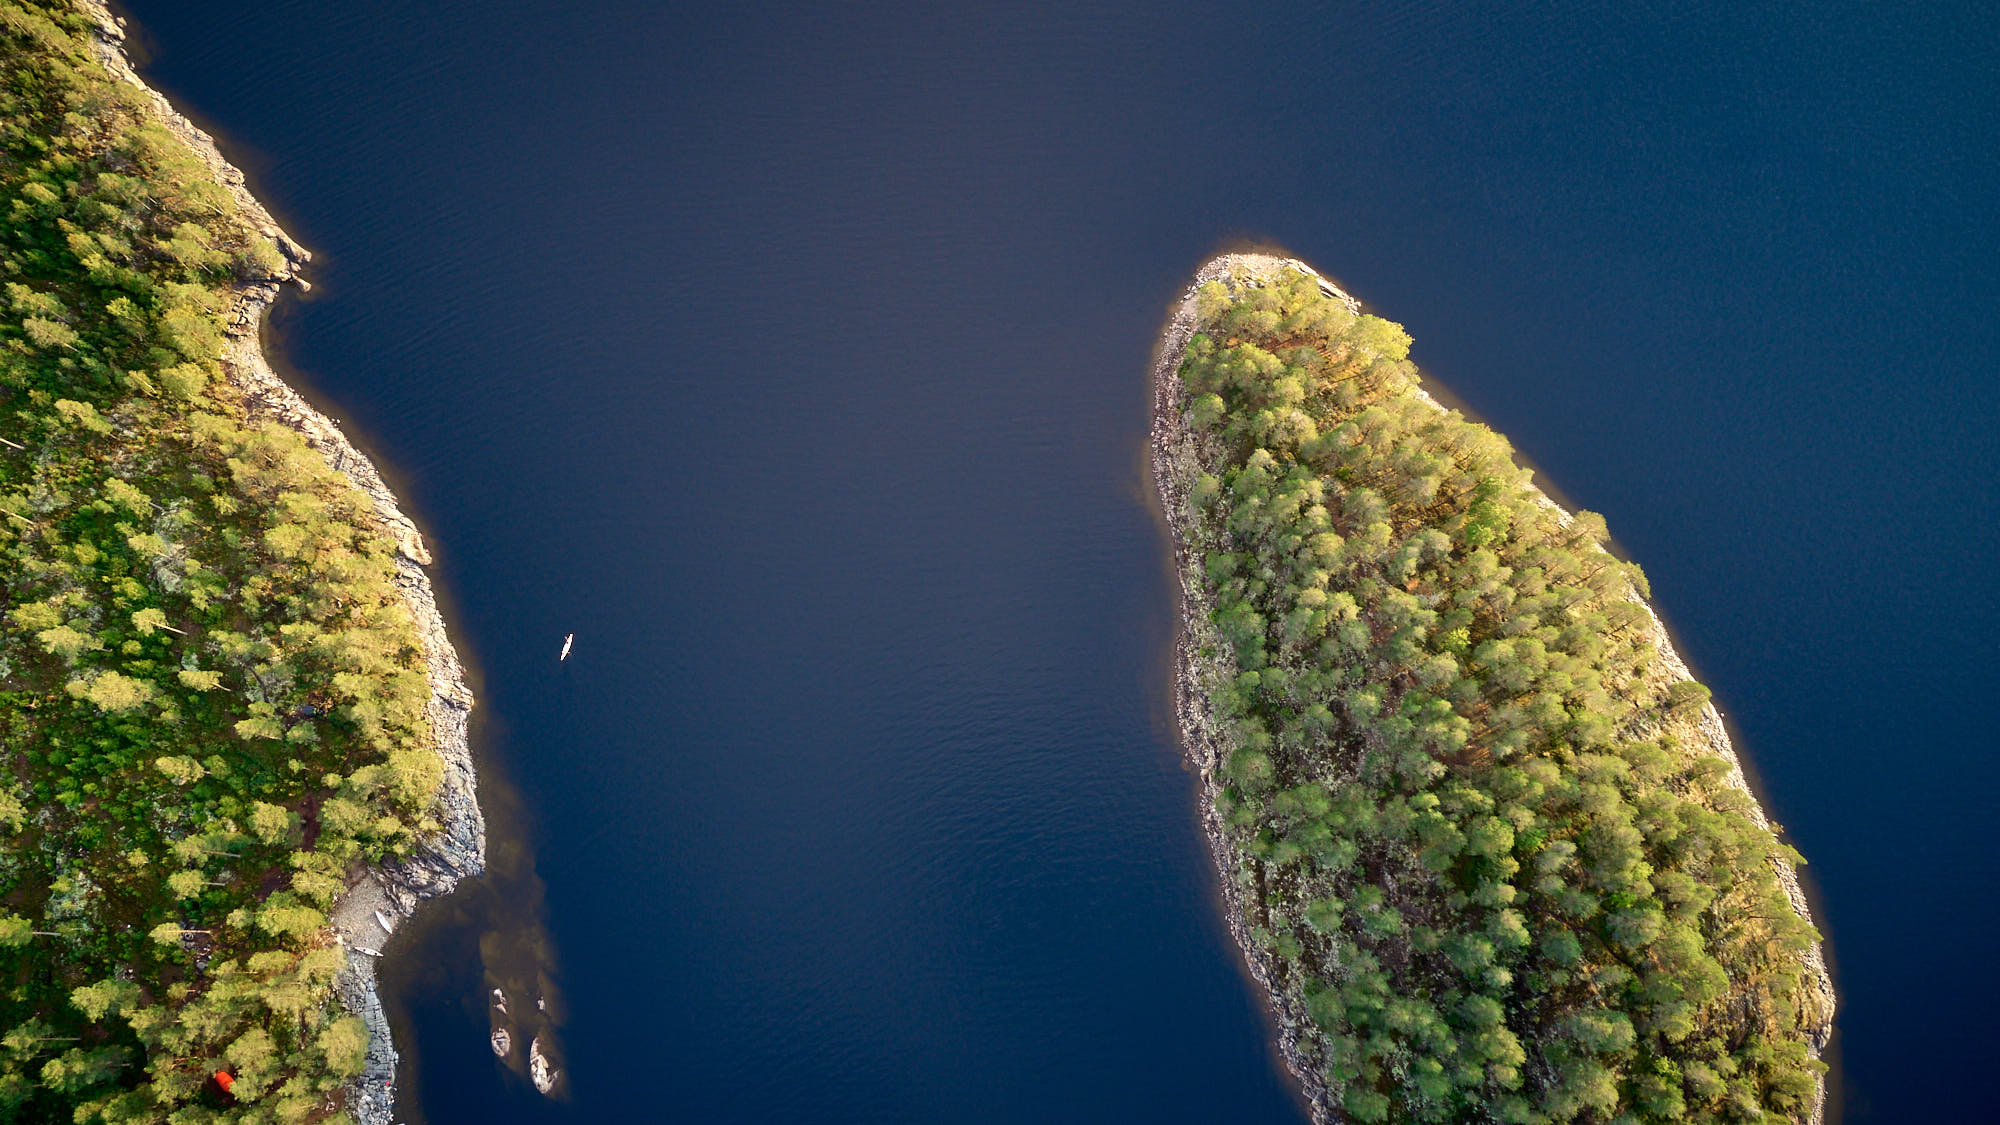 Top down view from a drone of islands on a lake in Sweden